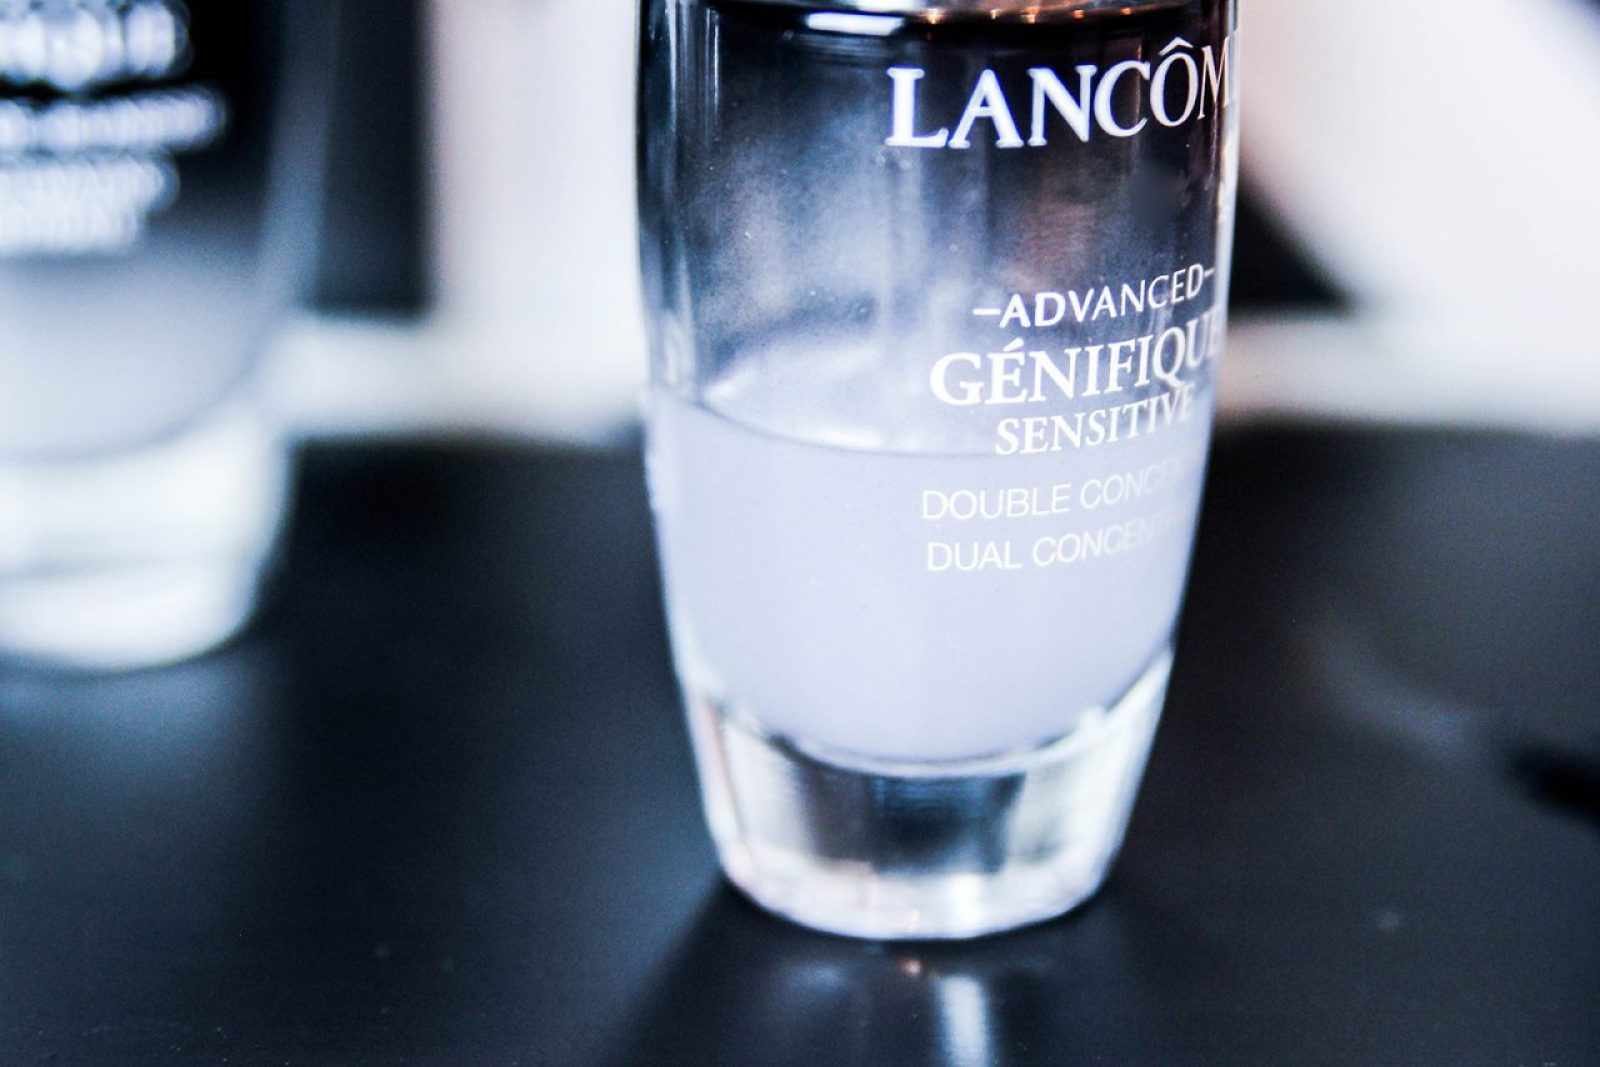 lancome-Serum-Genifique Sensitive-32